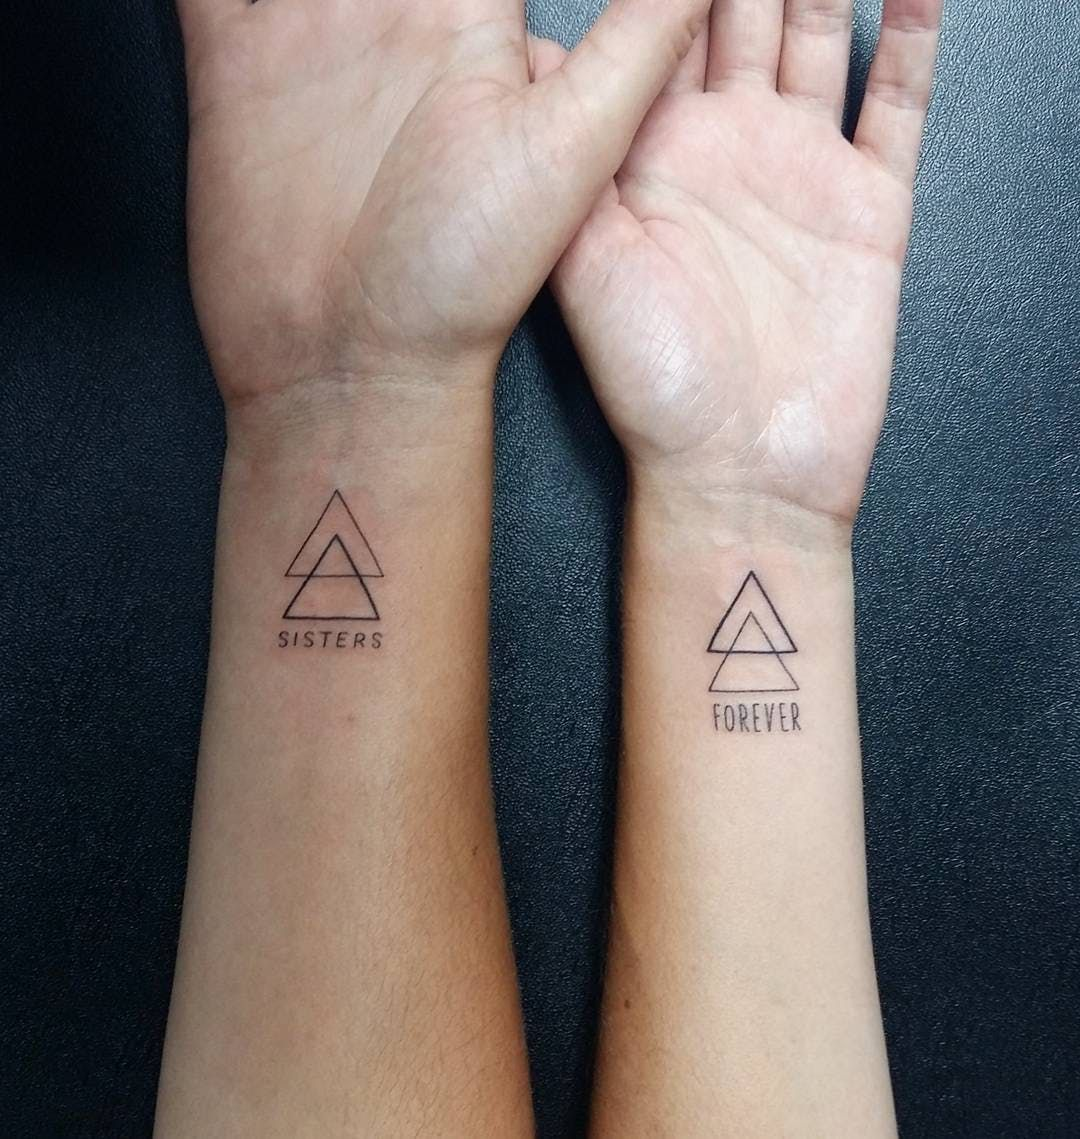 25 Sister Tattoo Ideas To Get With Your Other Half Matching Sister Tattoos Small Sister Tattoos Friendship Tattoos